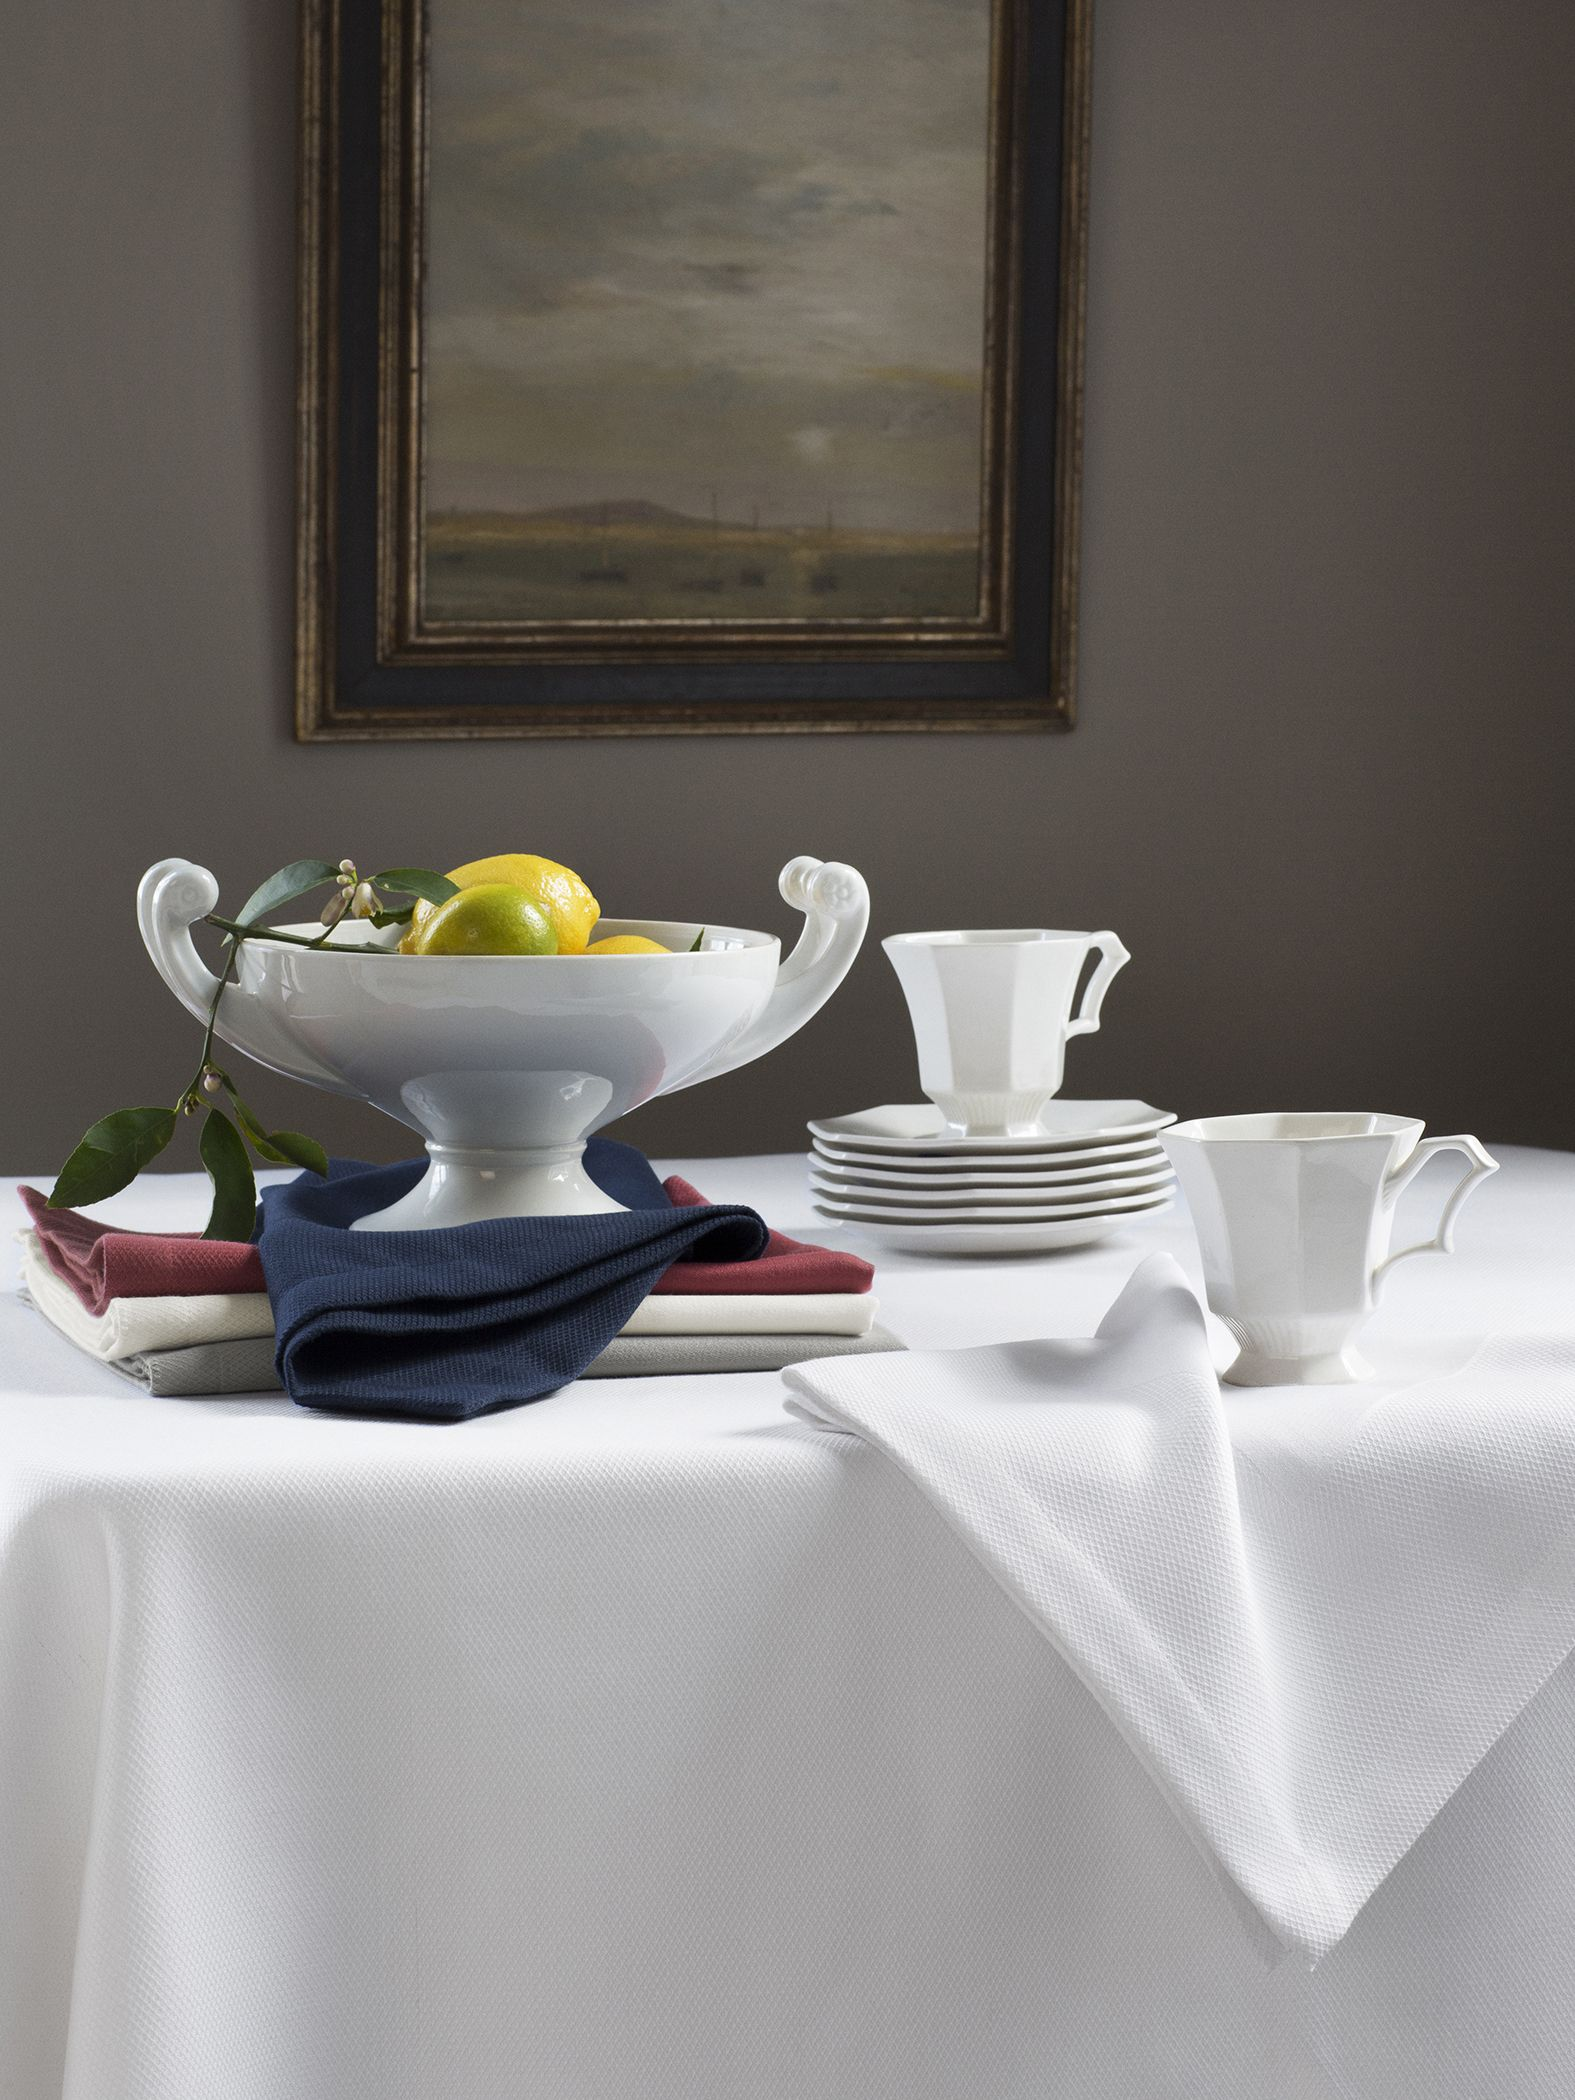 Smartly tailored to look like a classic hotelier's table linen: Squire.